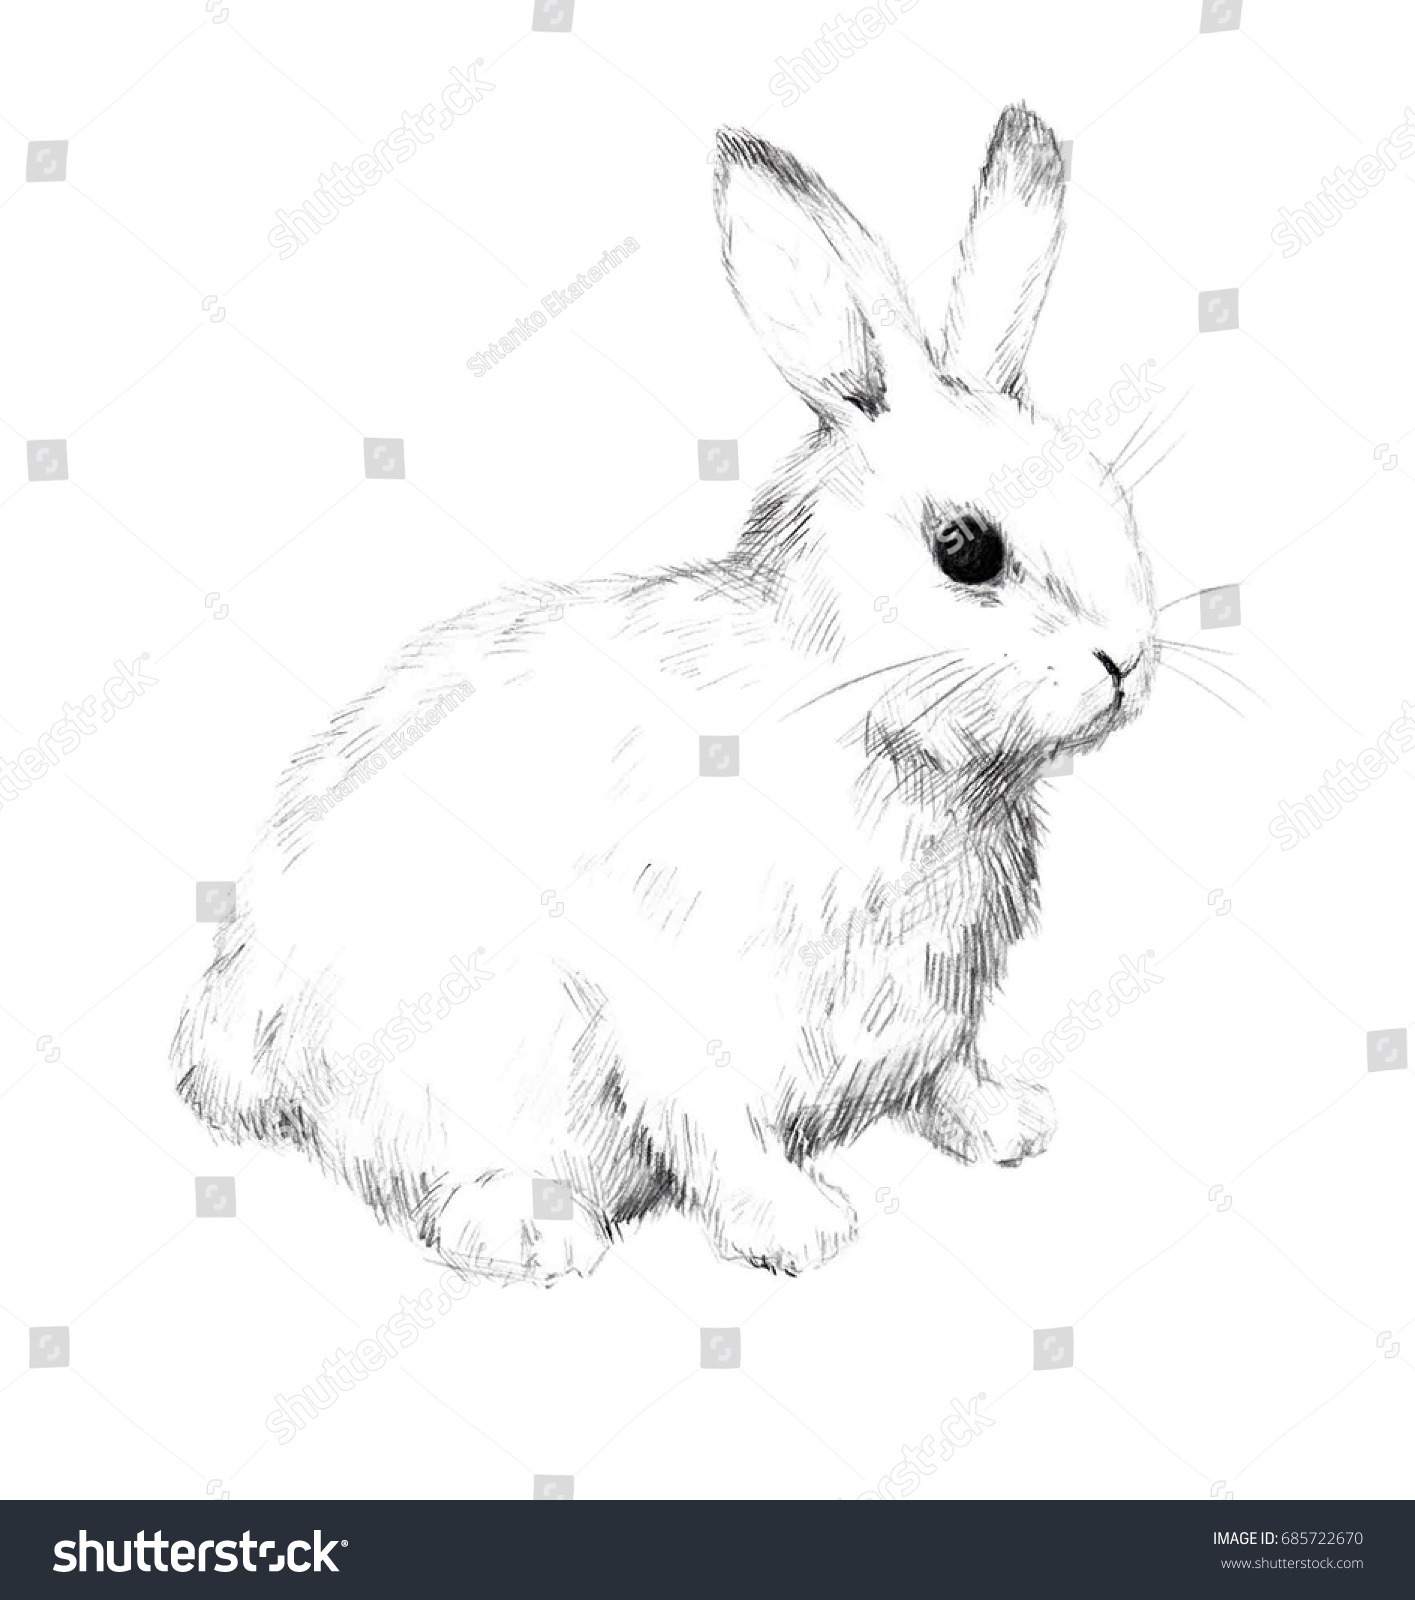 Sketch of a rabbit small furry pet pencil sketch 2